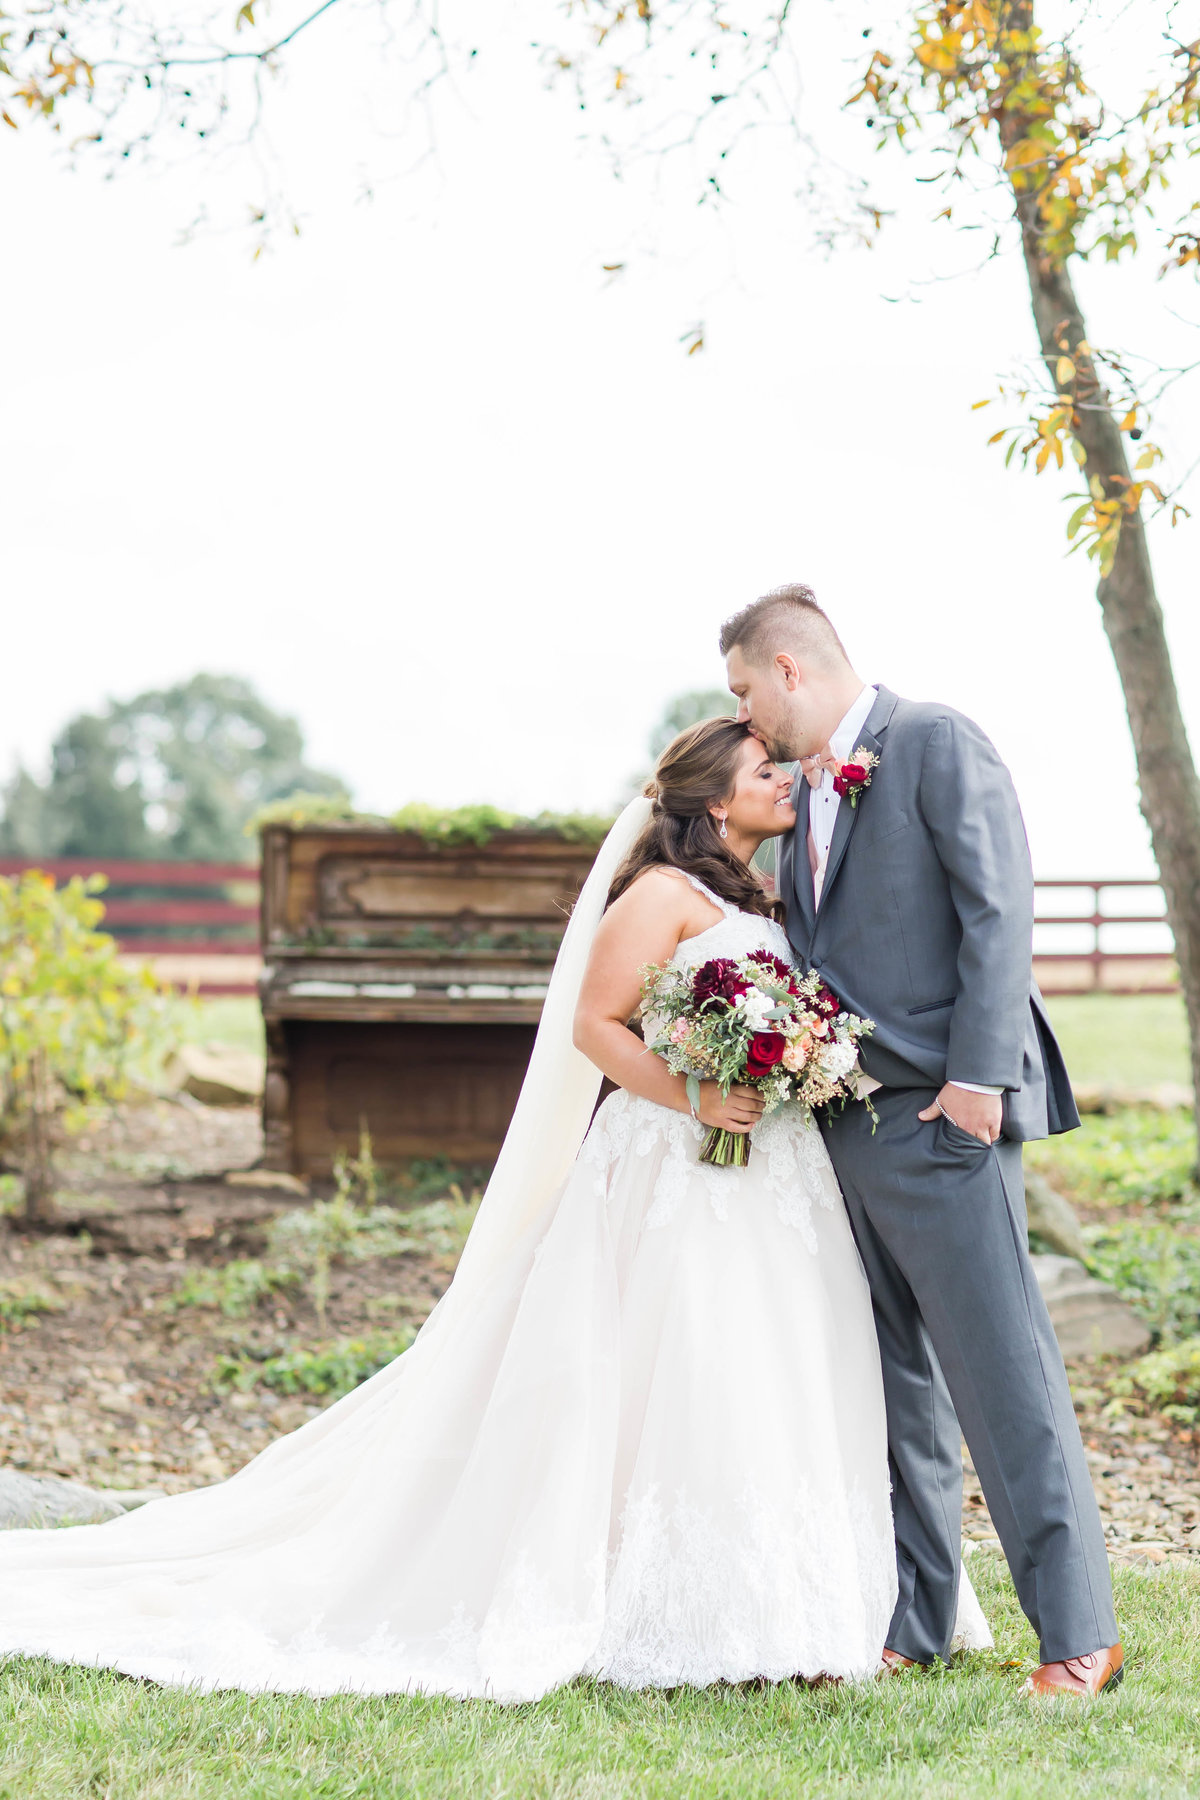 peacock-ridge-fall-wedding-loren-jackson-photography-59